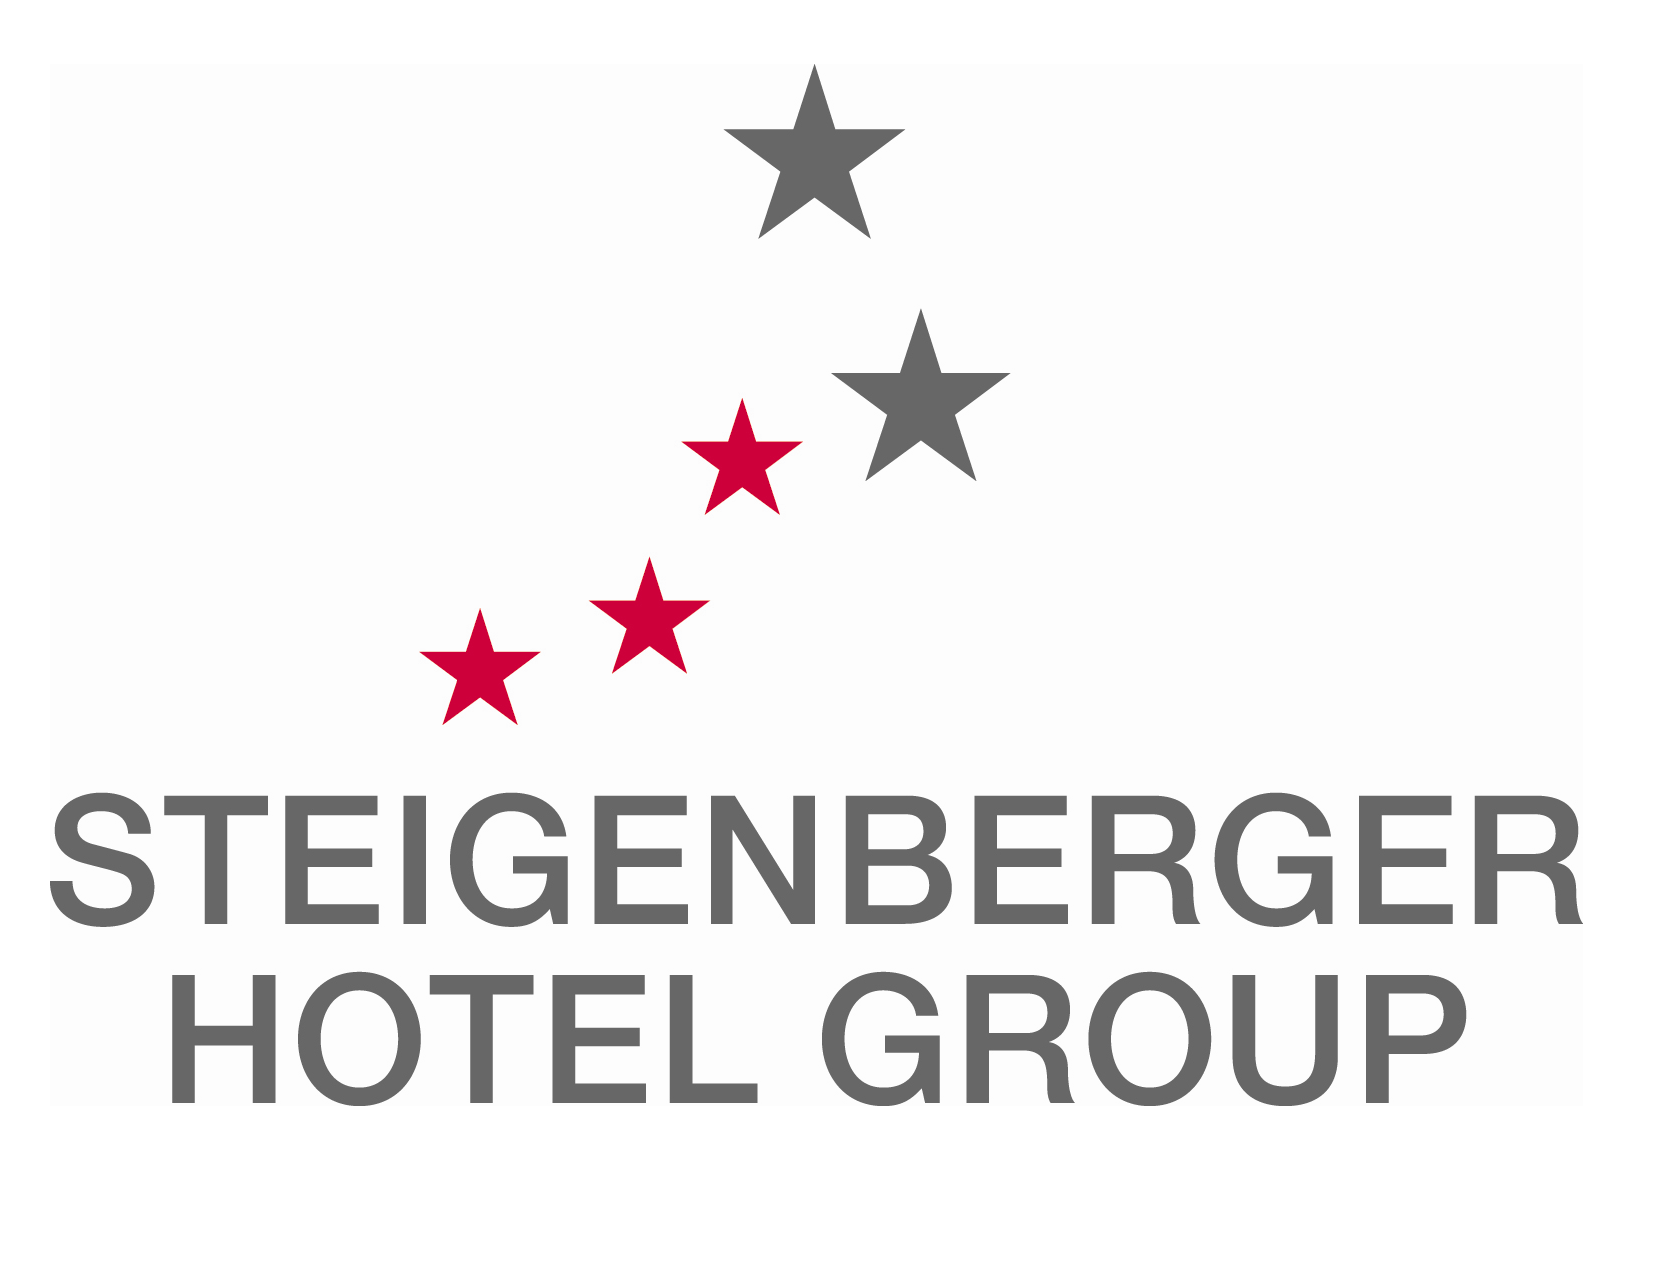 Some hotels of the Steigenberger Hotel Group use B-TRAY hospitality trays